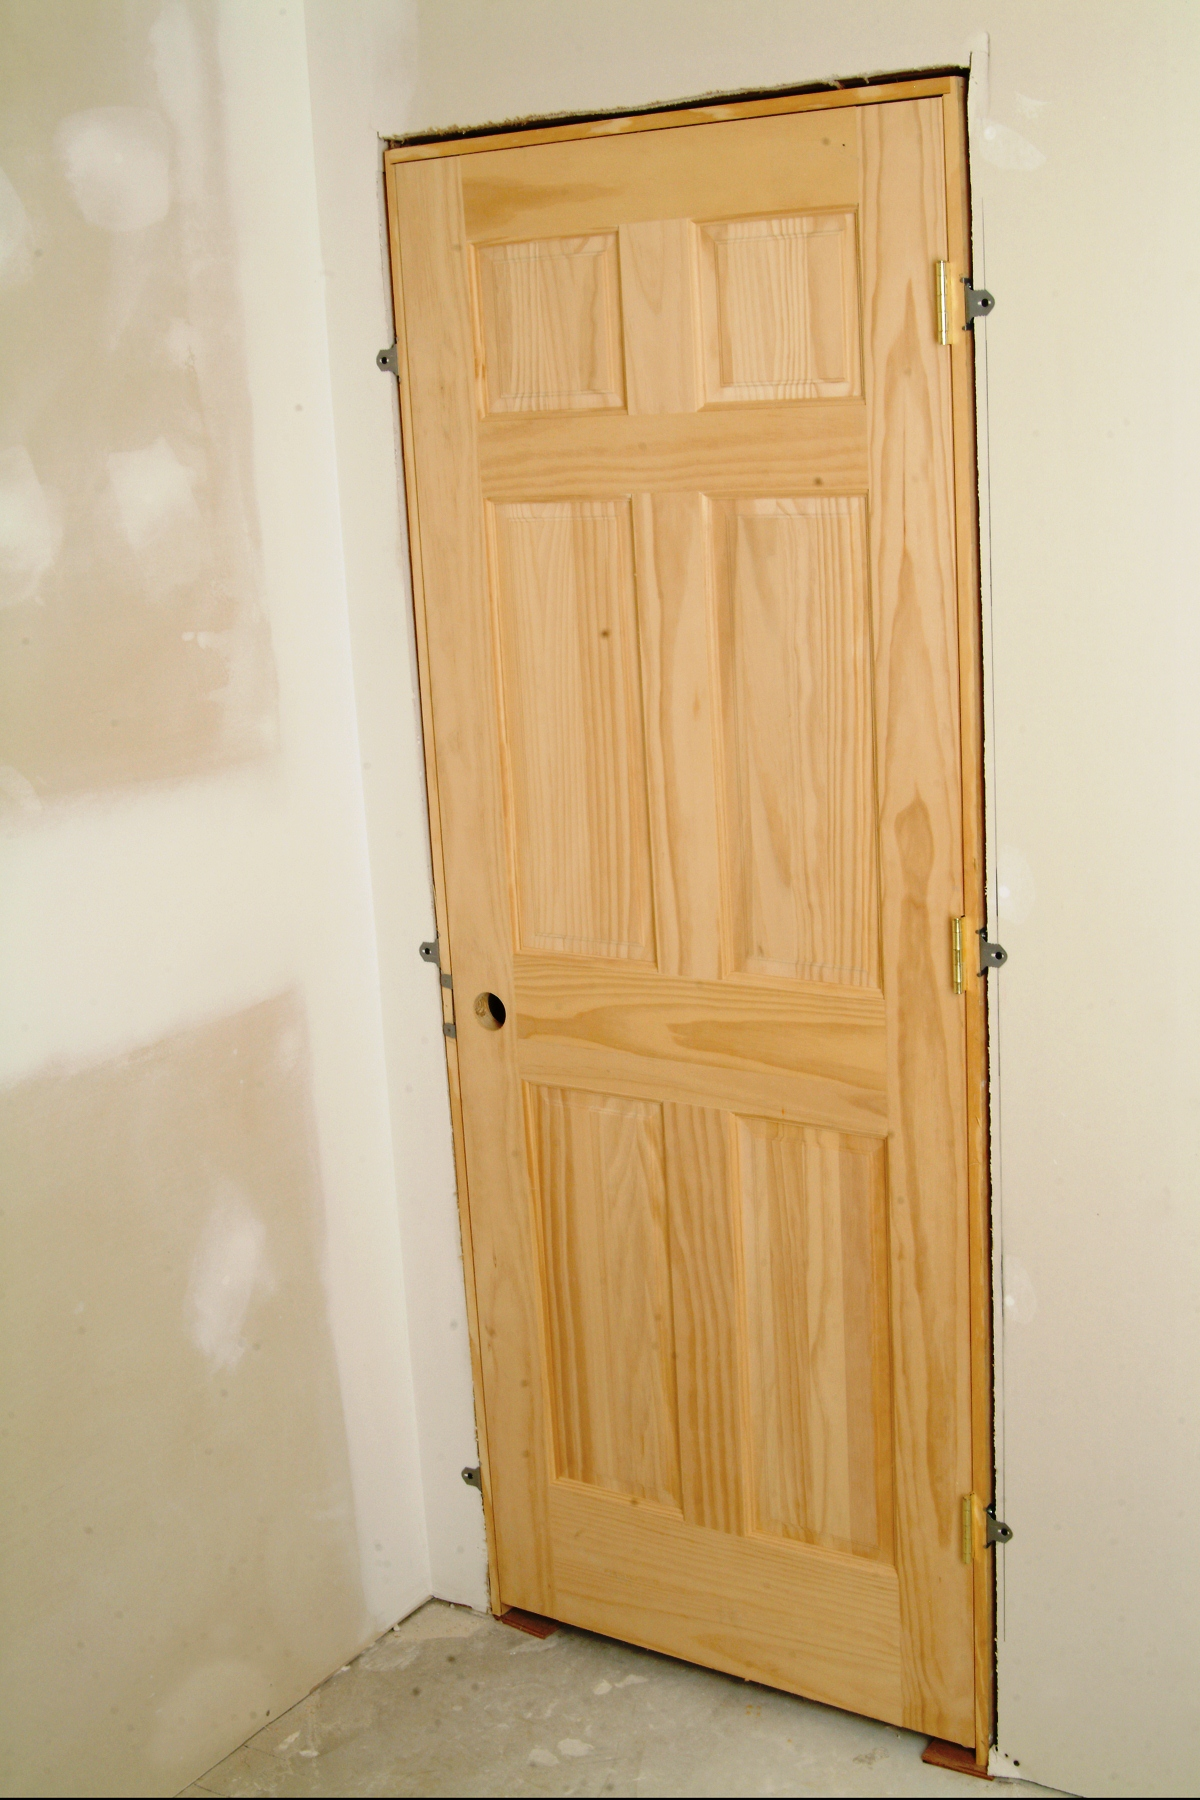 Installing Interior Door - 3 Easy Steps